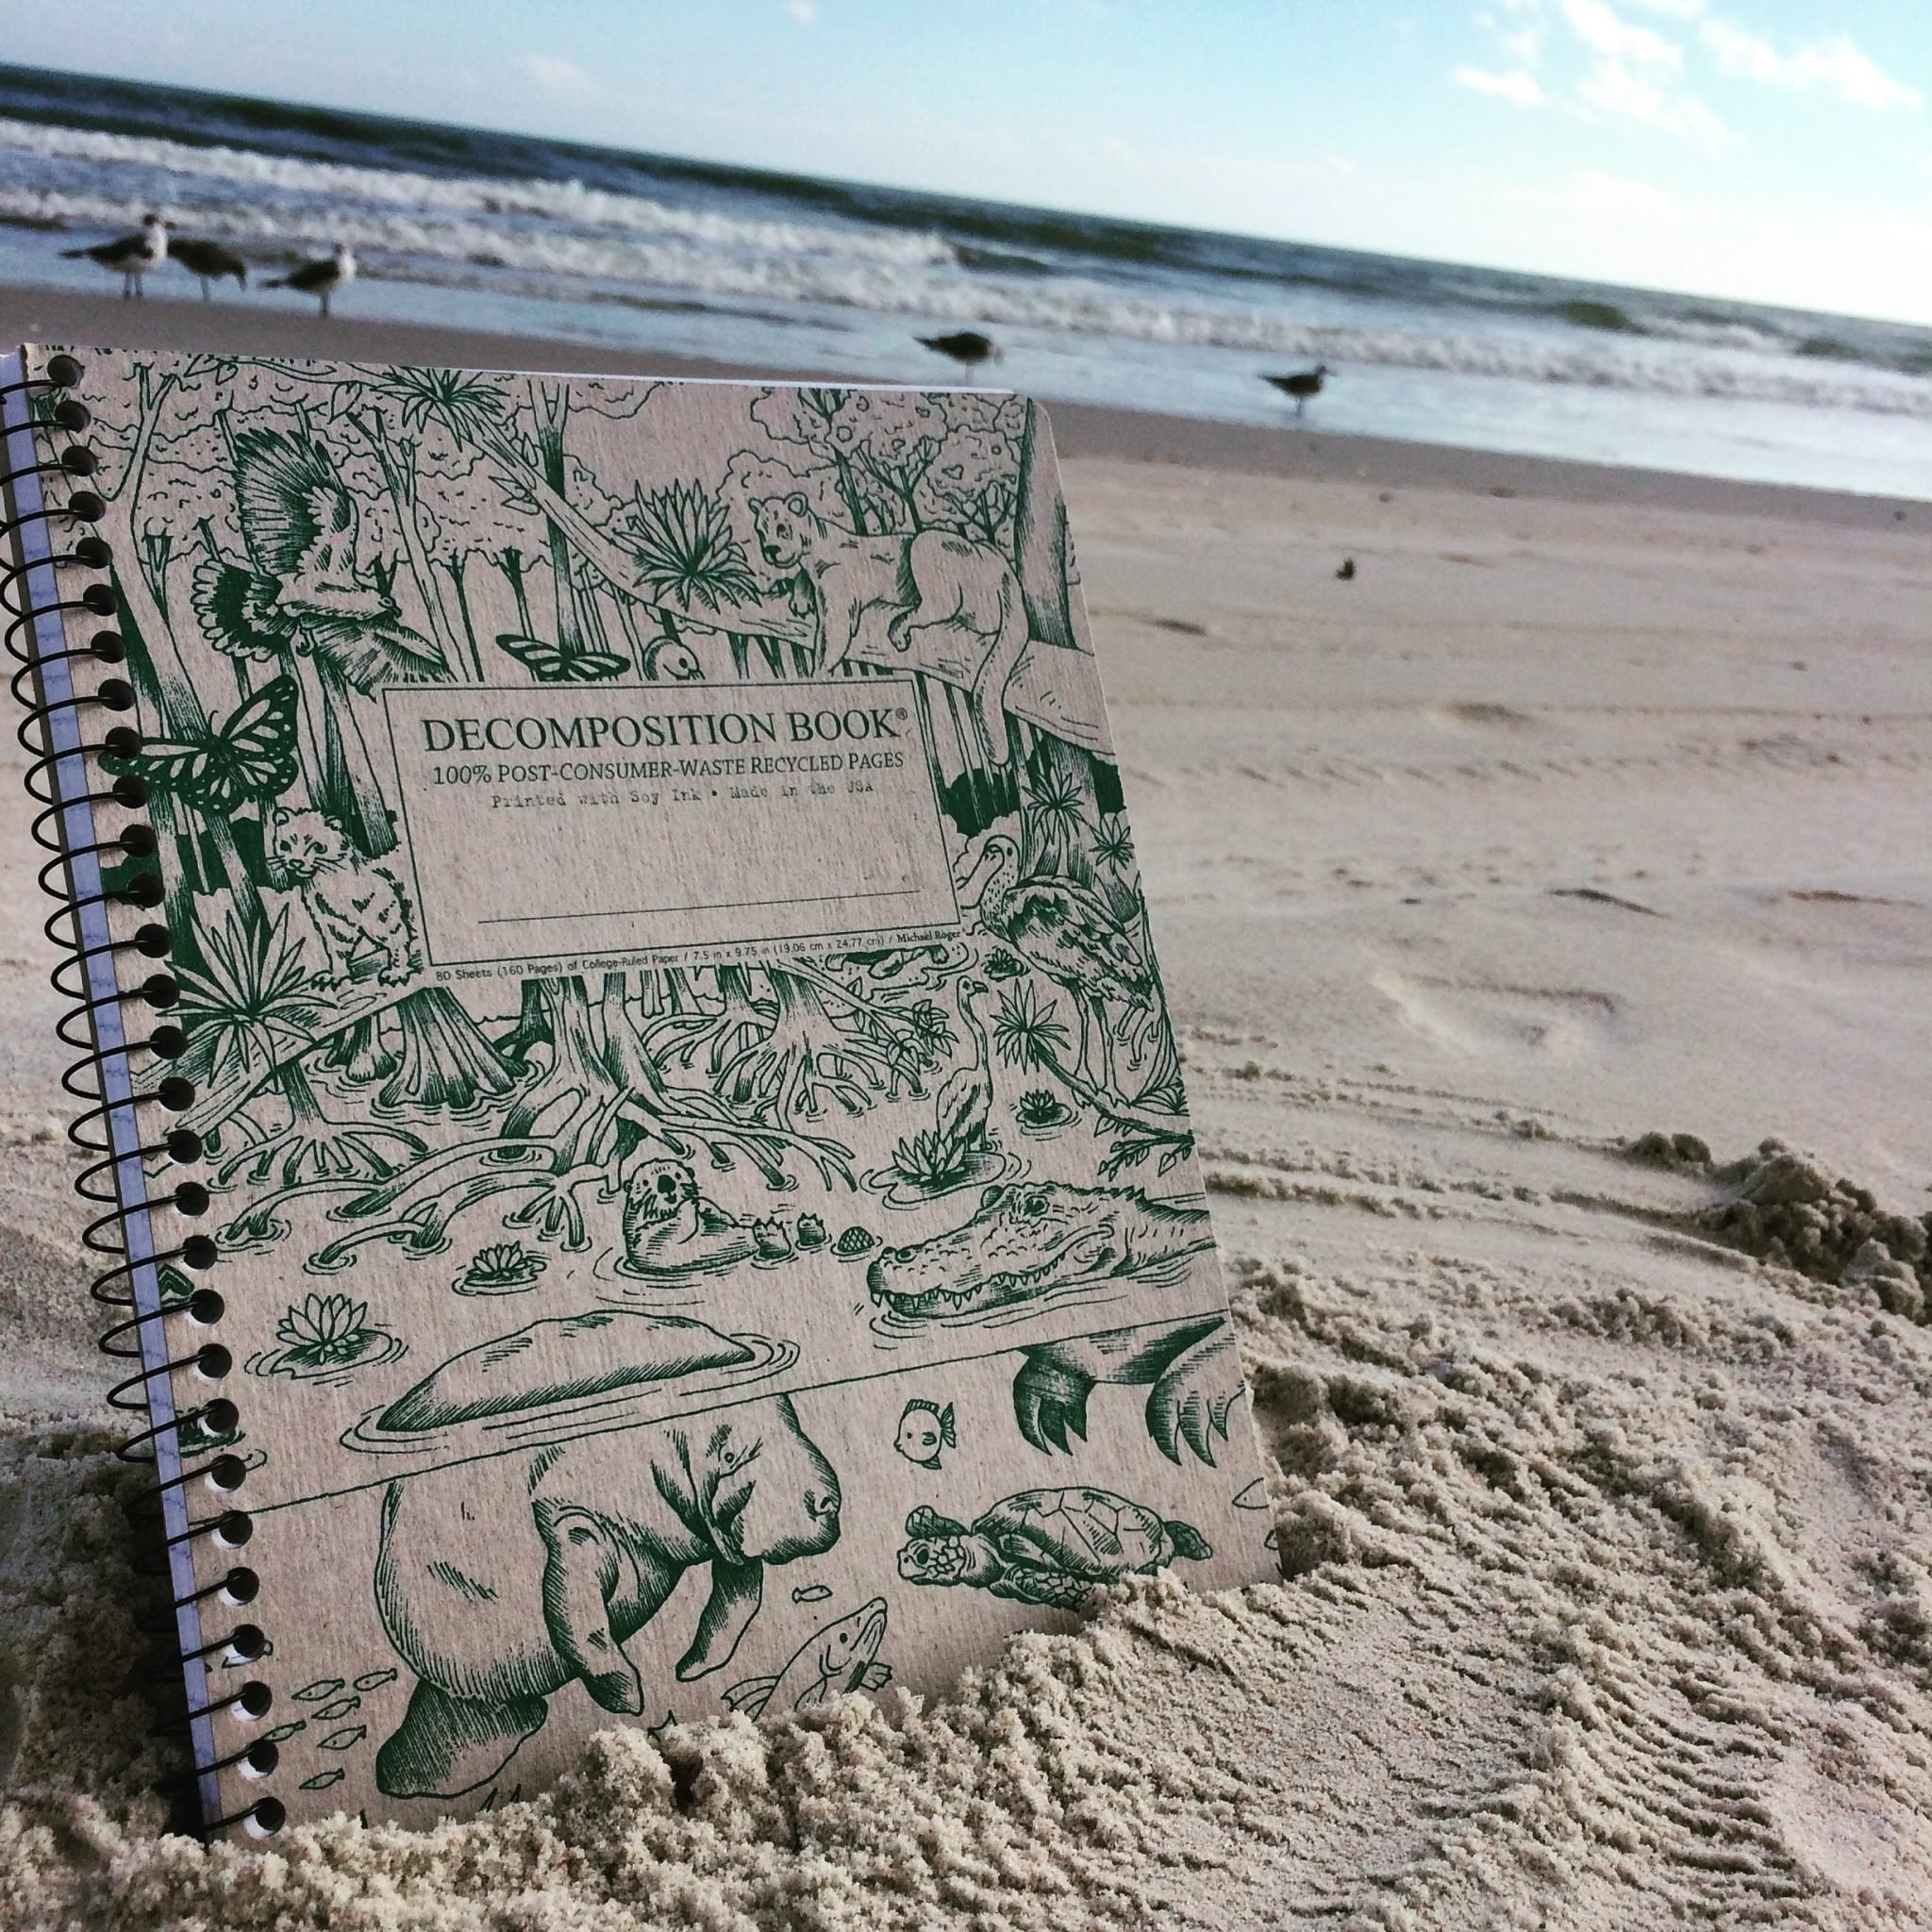 The notebook displayed upright in the sand at the ocean with manatees, sea turtles, mangroves and other wildlife on the cover